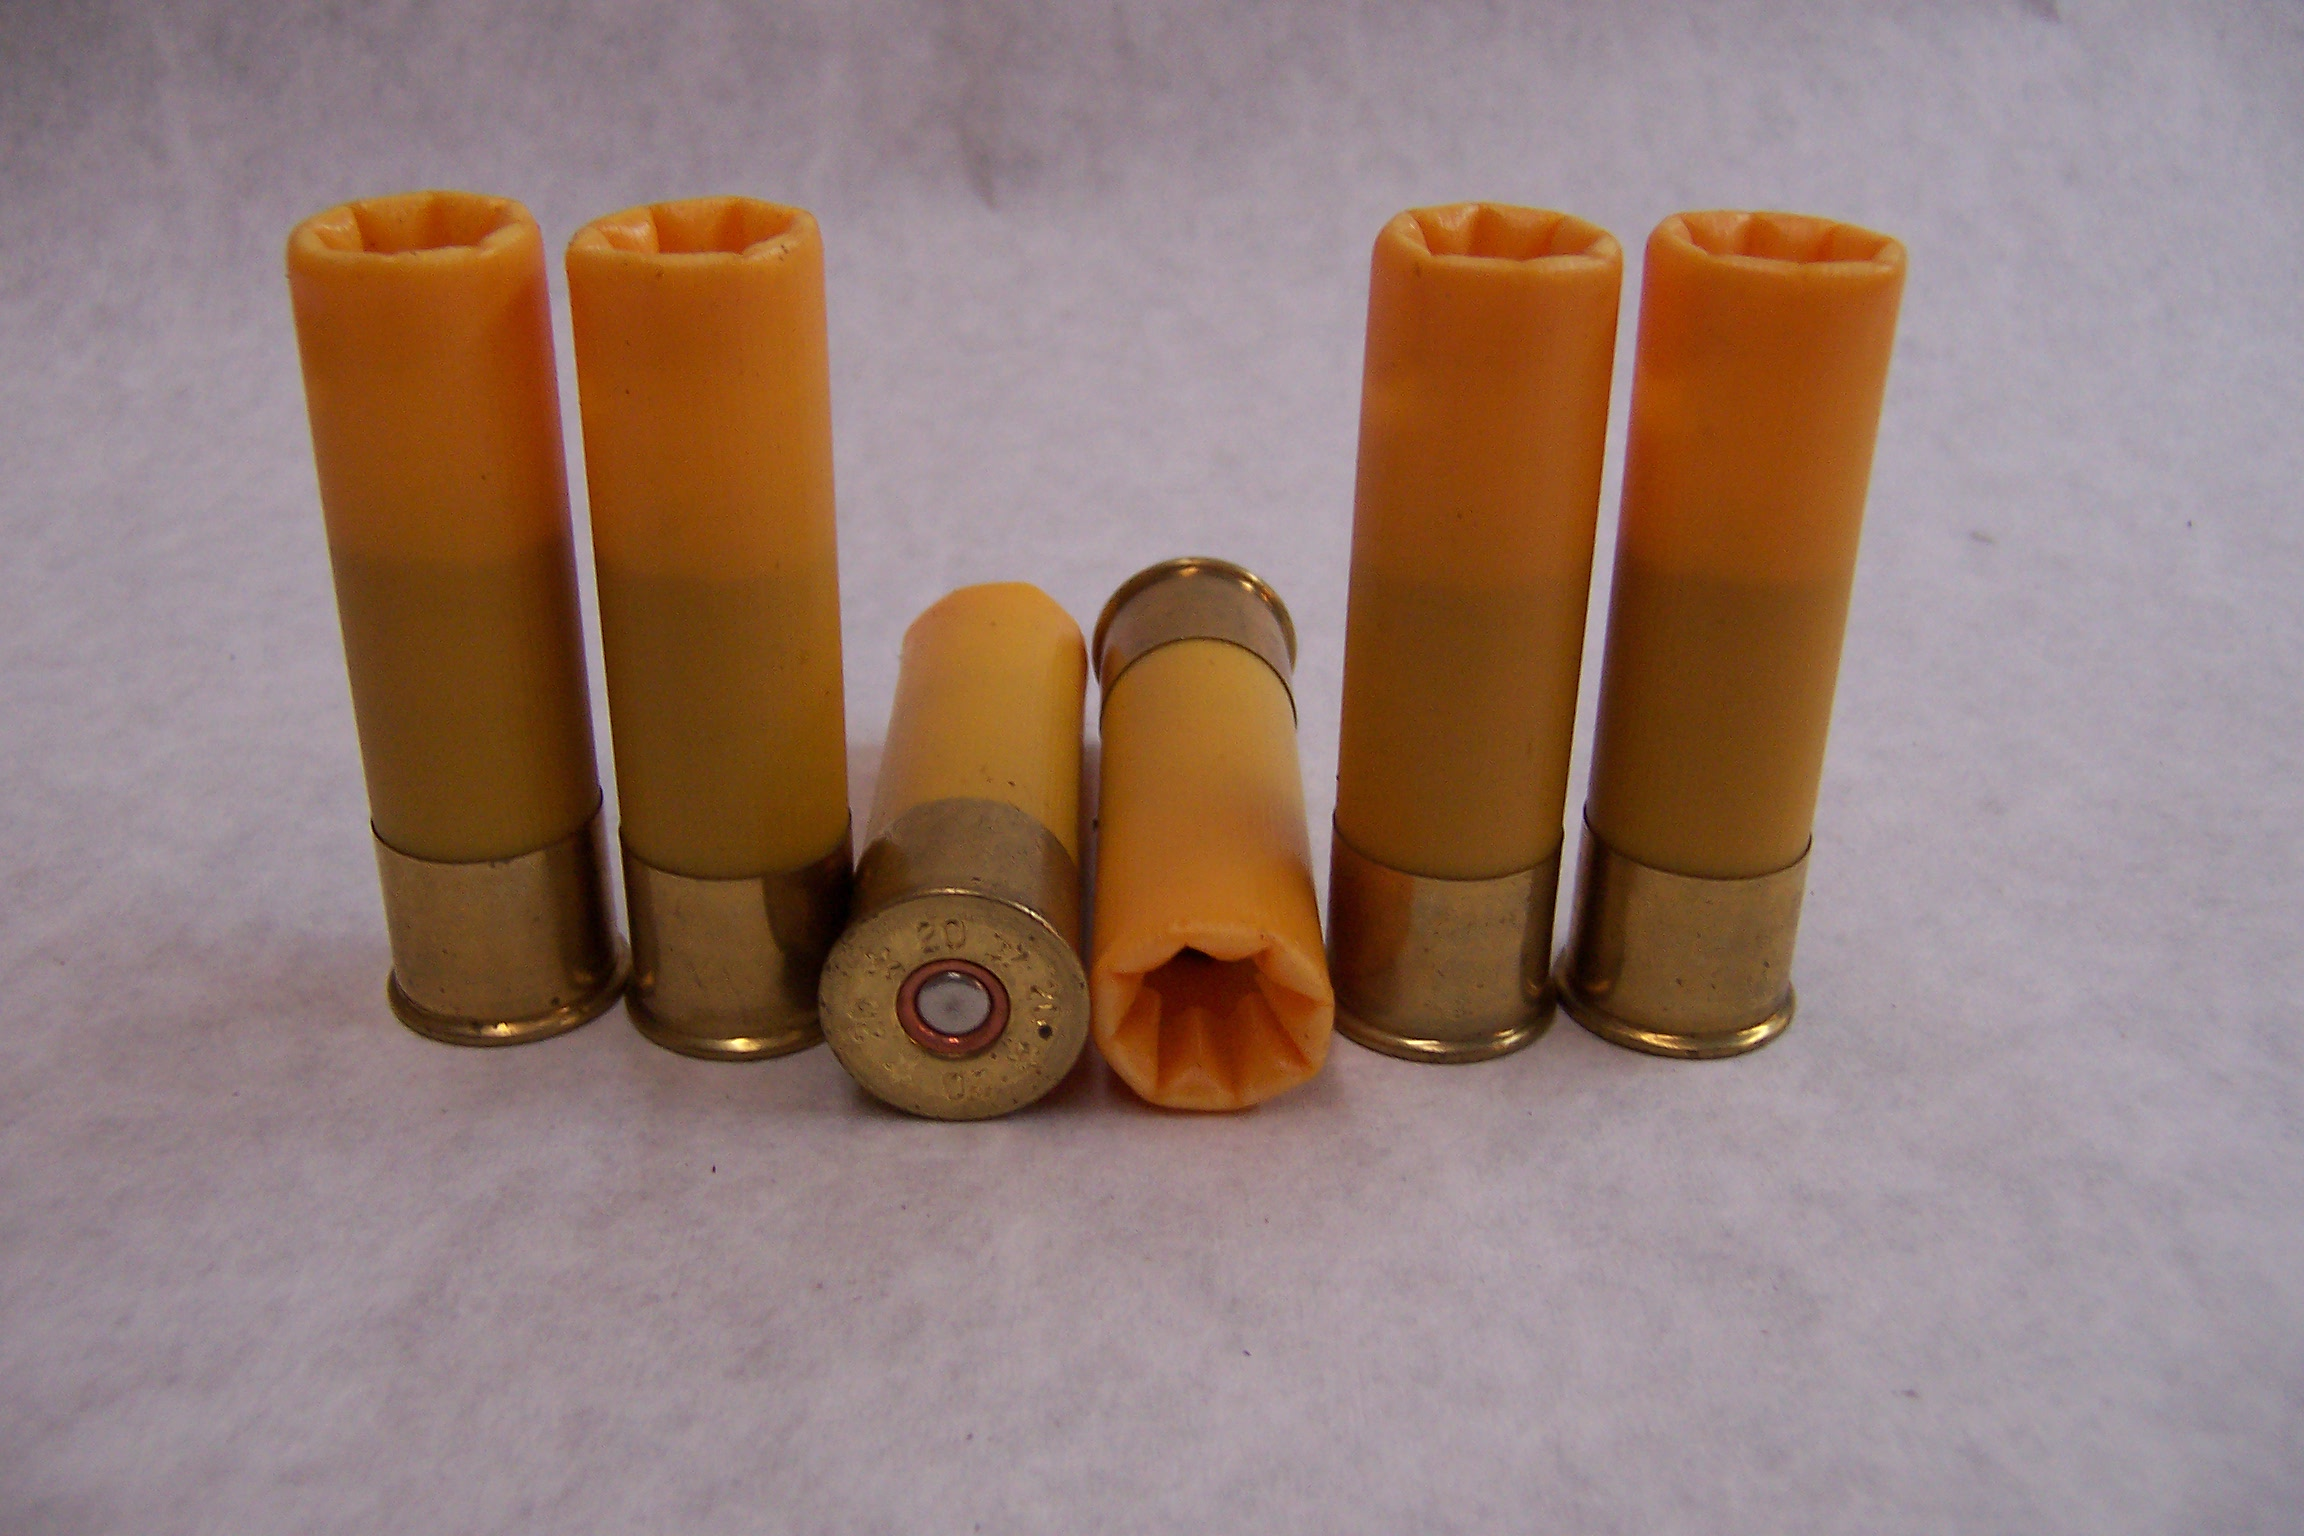 20 Gauge Blanks with Smoke